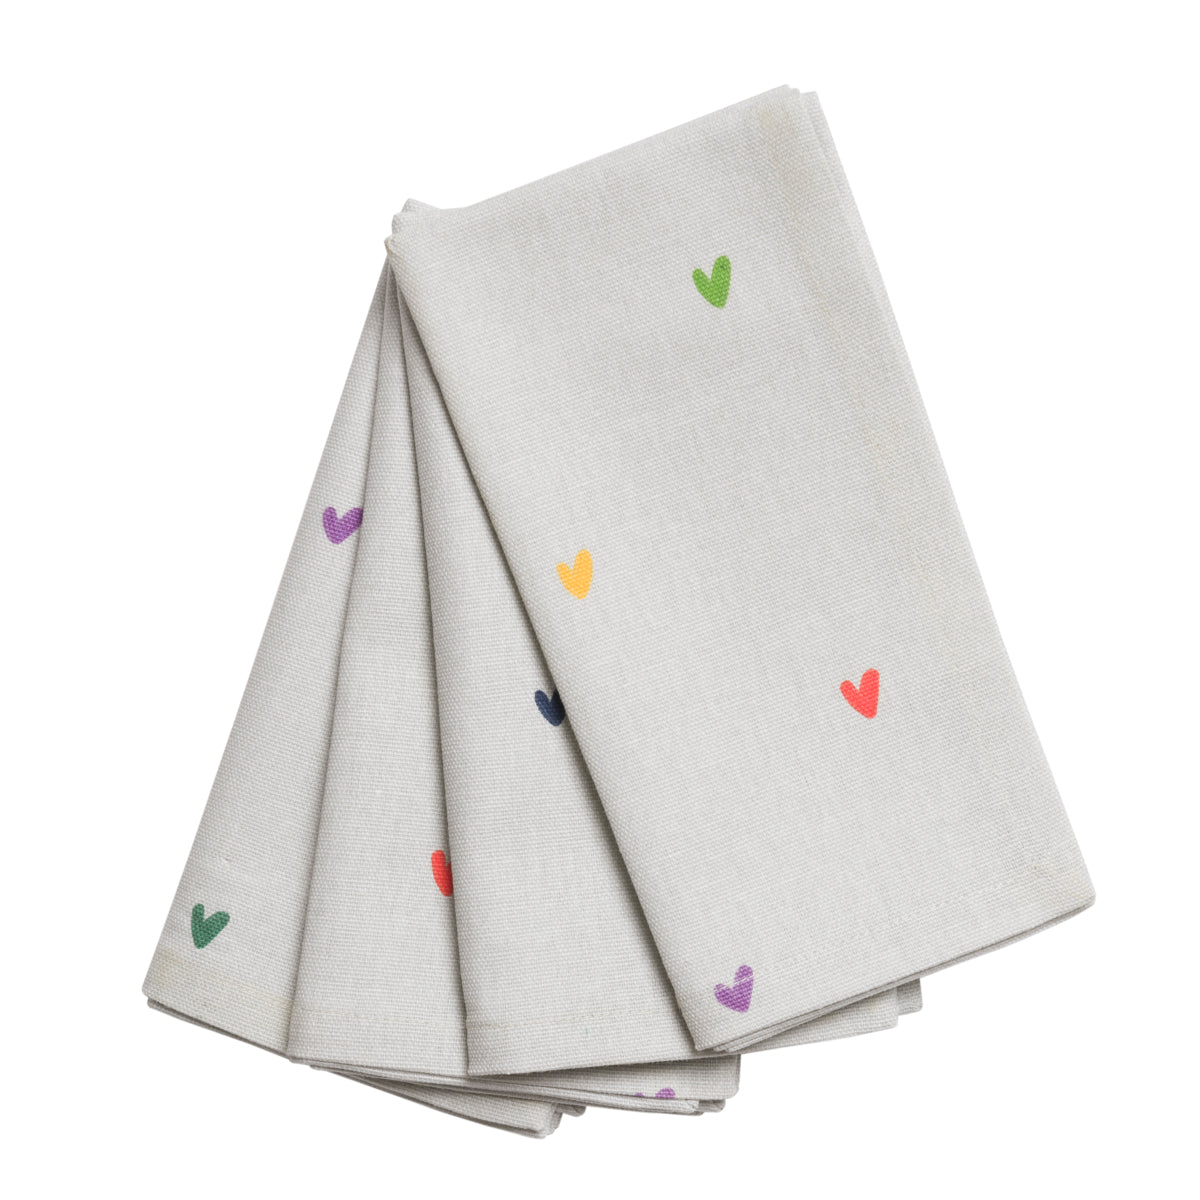 Multicoloured Hearts Napkins (Set of 4) by Sophie Allport